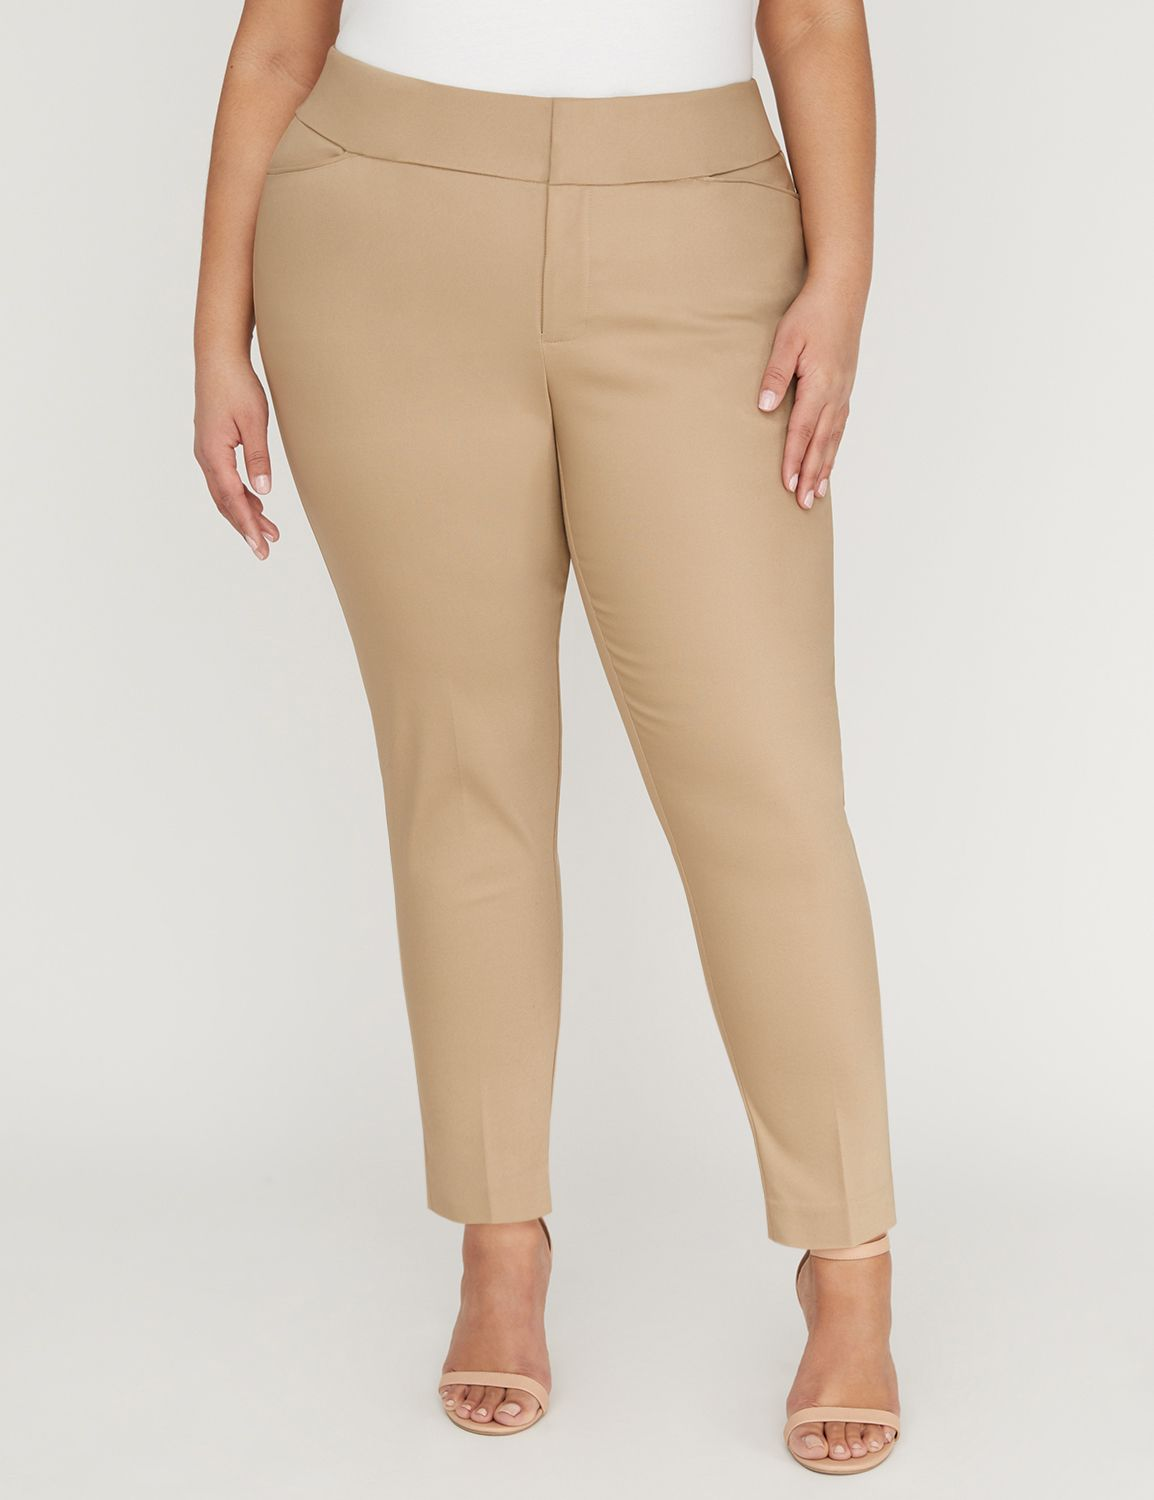 Updated Modern Stretch Ankle Pant 1087775 MODERN STRETCH WIDE WAISTBA MP-300097594